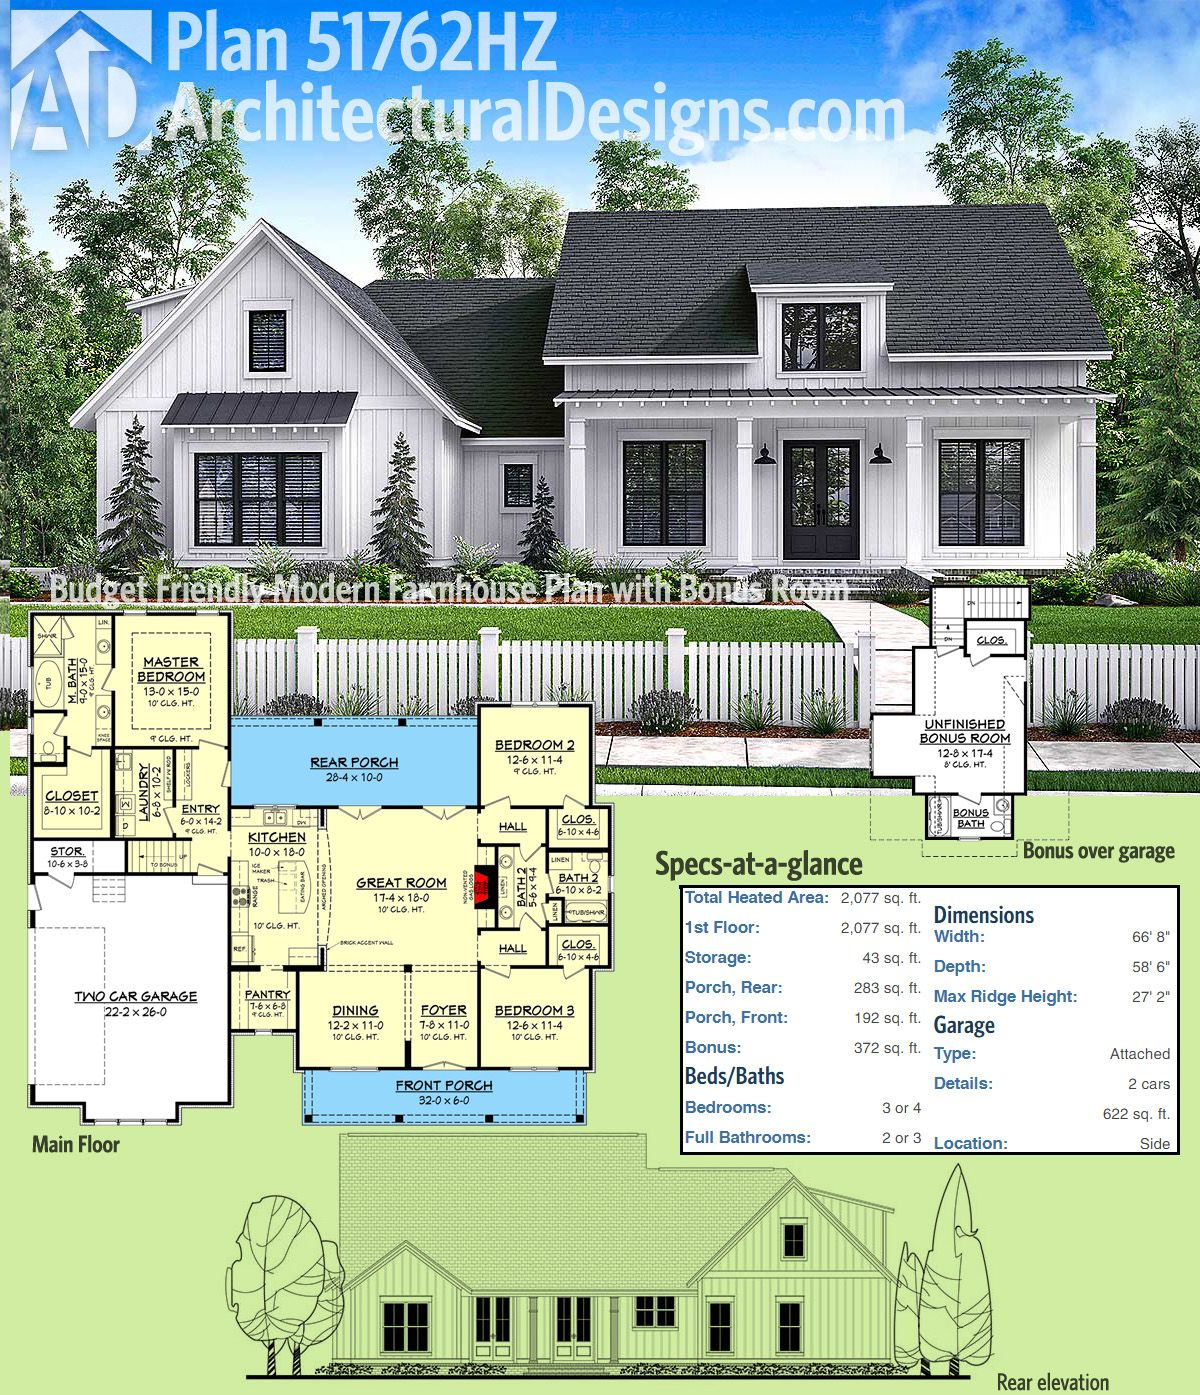 Plan 51762hz budget friendly modern farmhouse plan with for One level home plans with bonus room